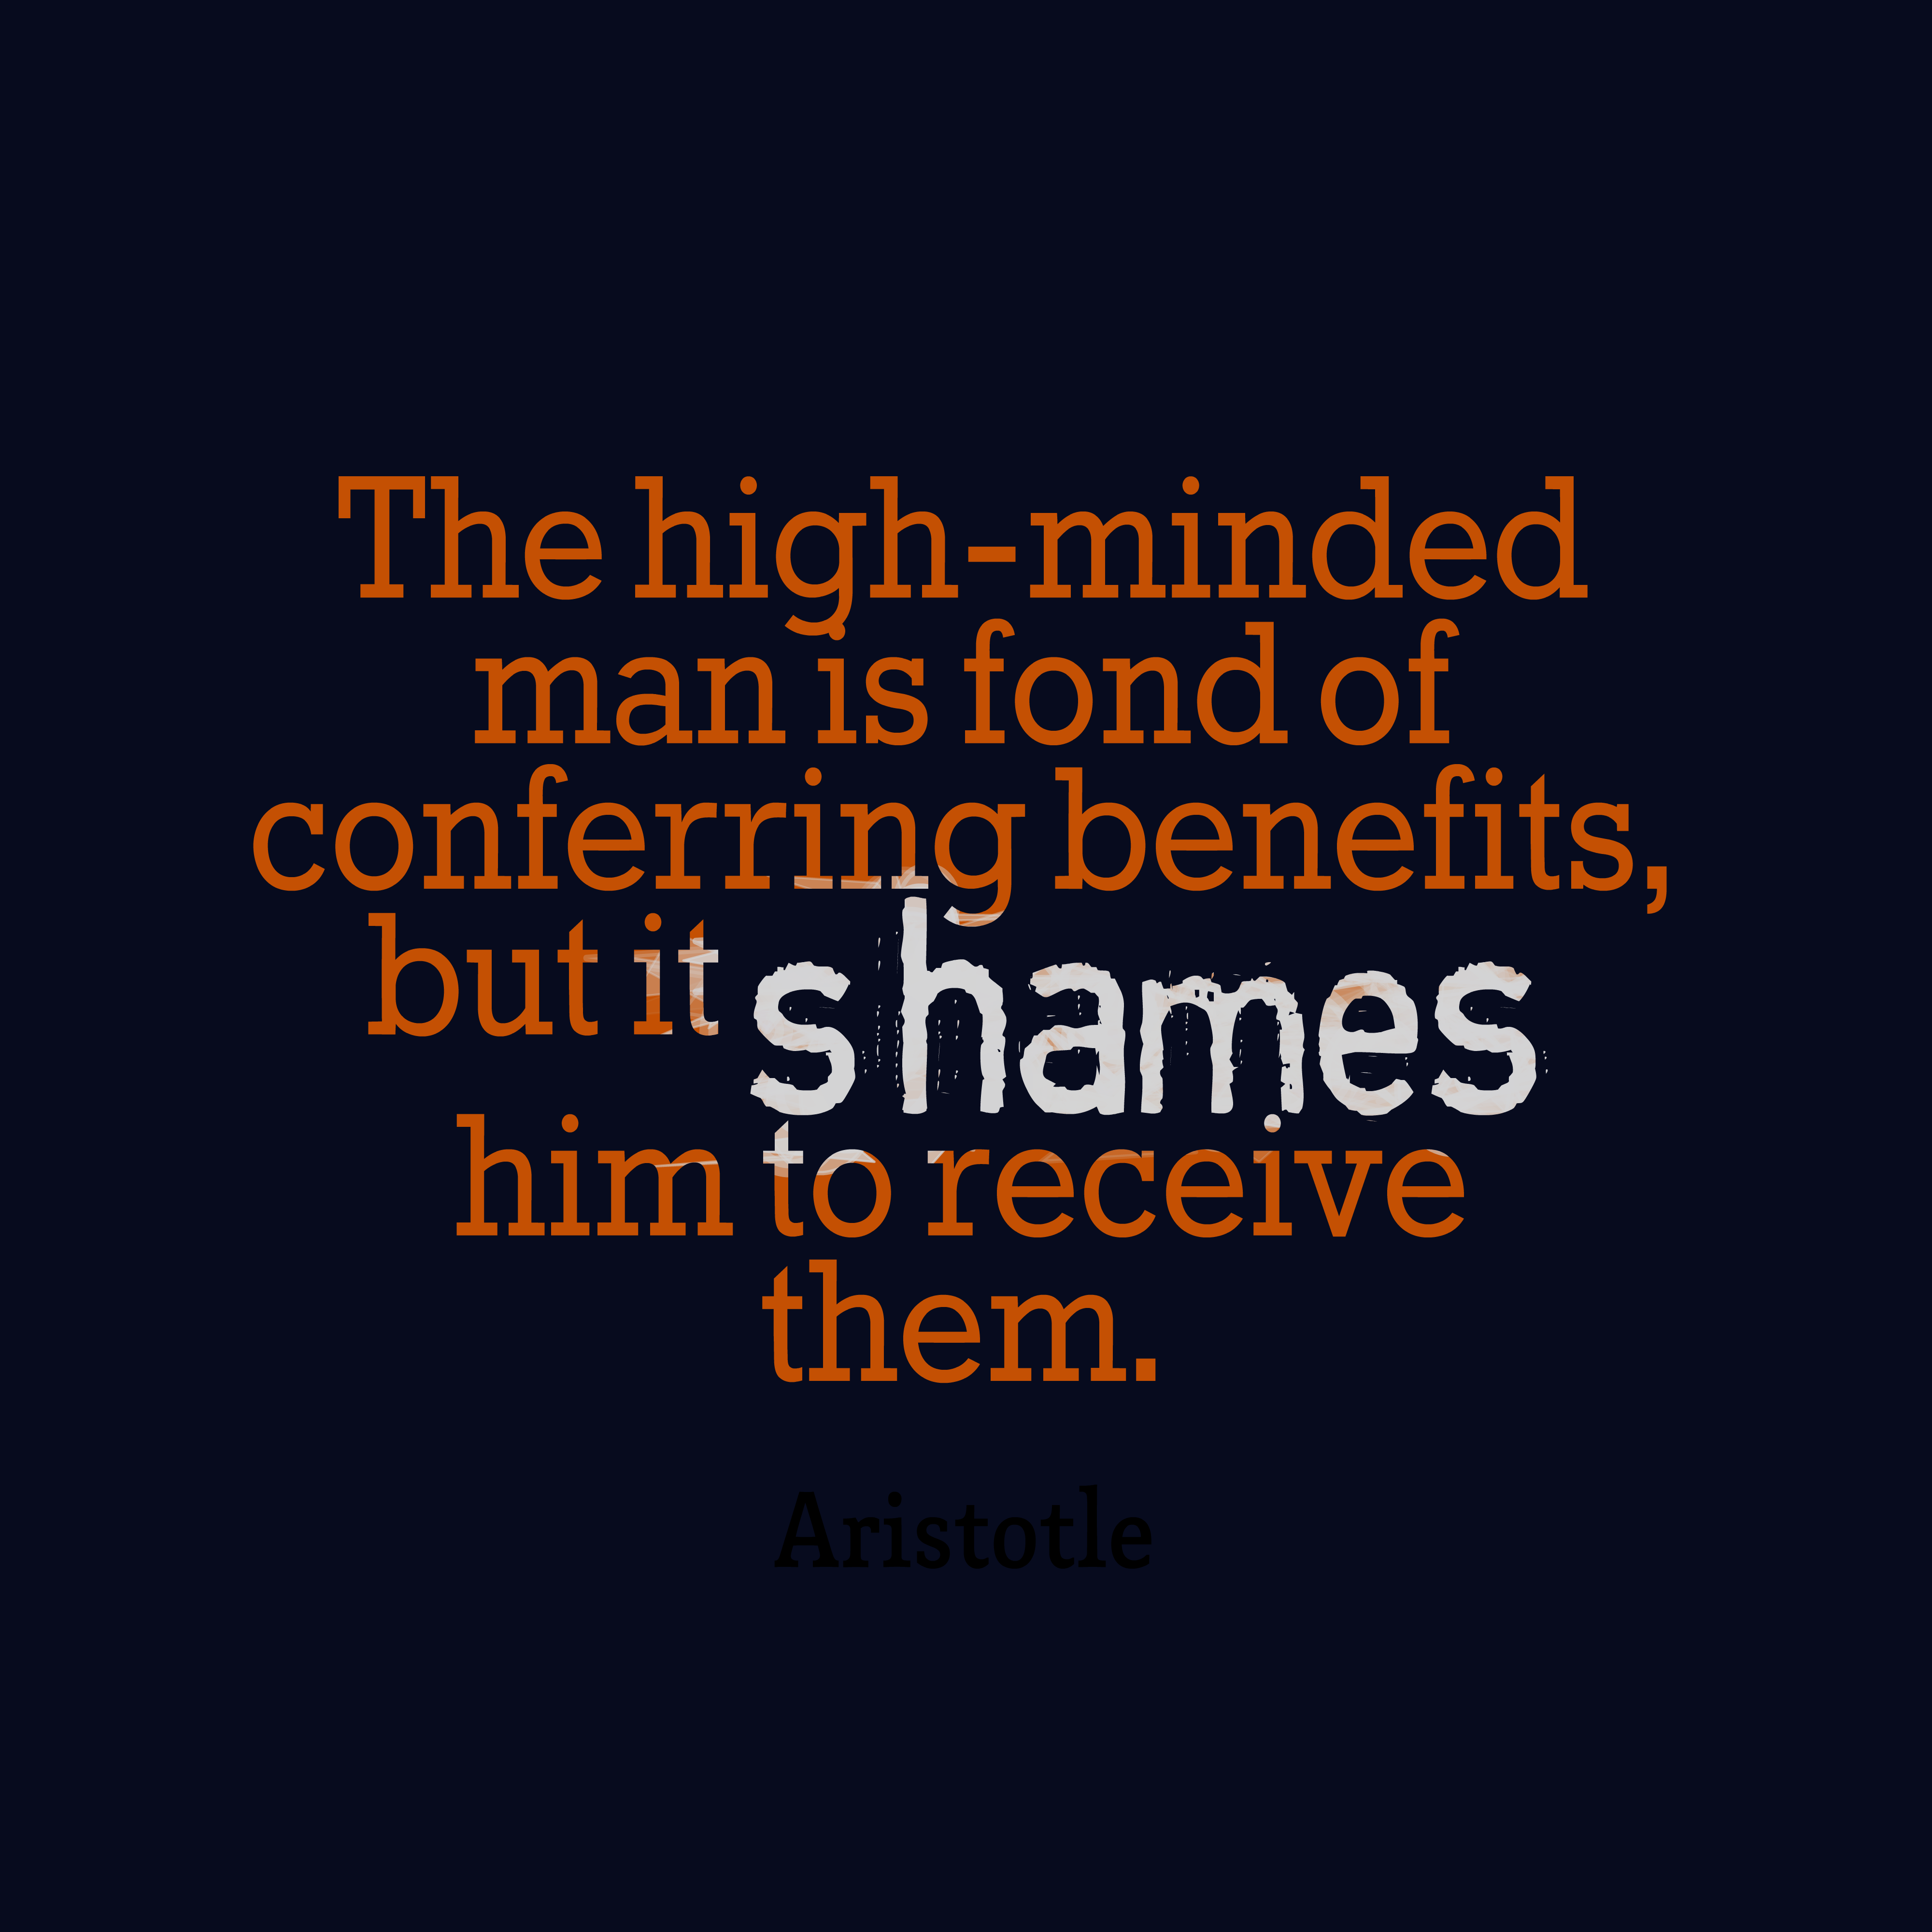 Quotes image of The high-minded man is fond of conferring benefits, but it shames him to receive them.